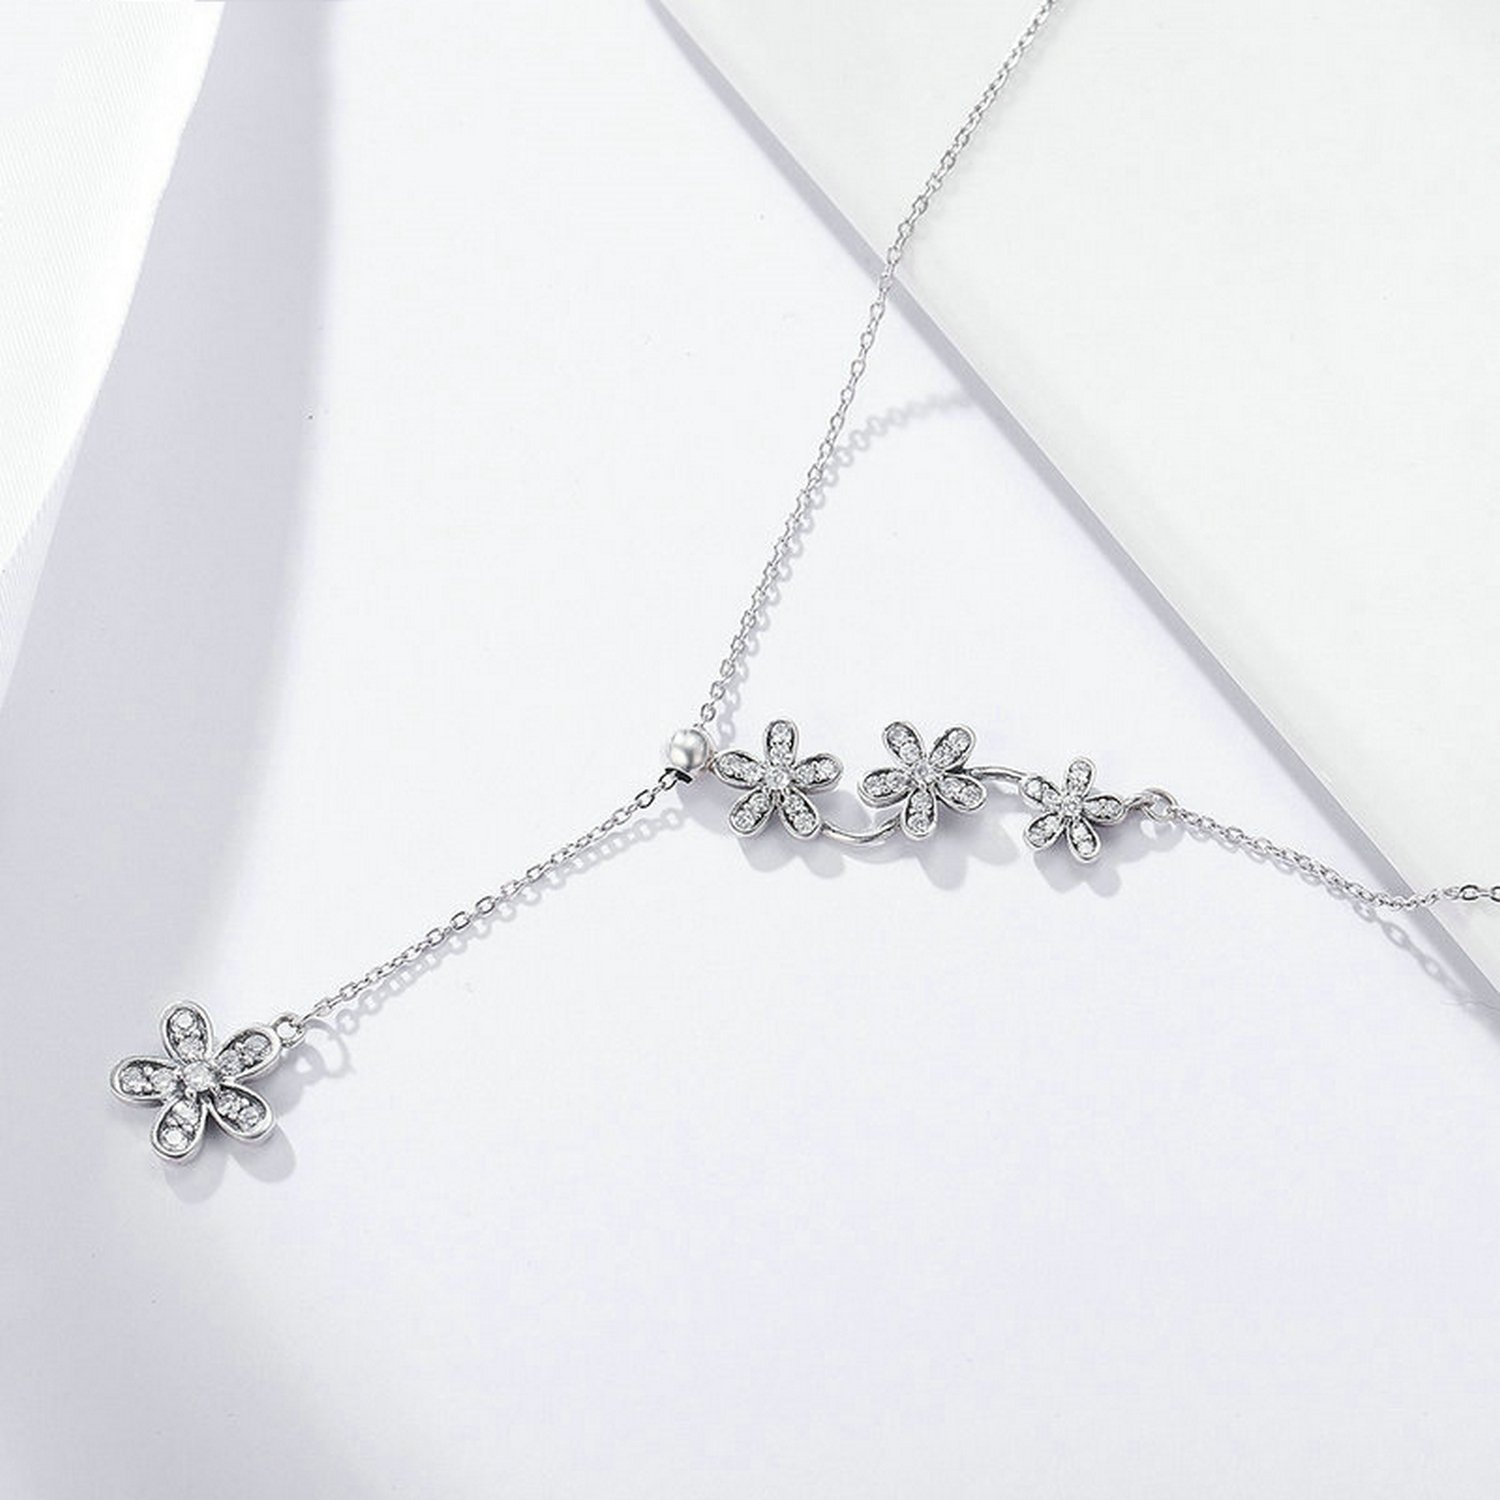 CS-DB Jewelry Silver Luminous Daisy Flower Tassel Chain Charm Pendants Necklaces